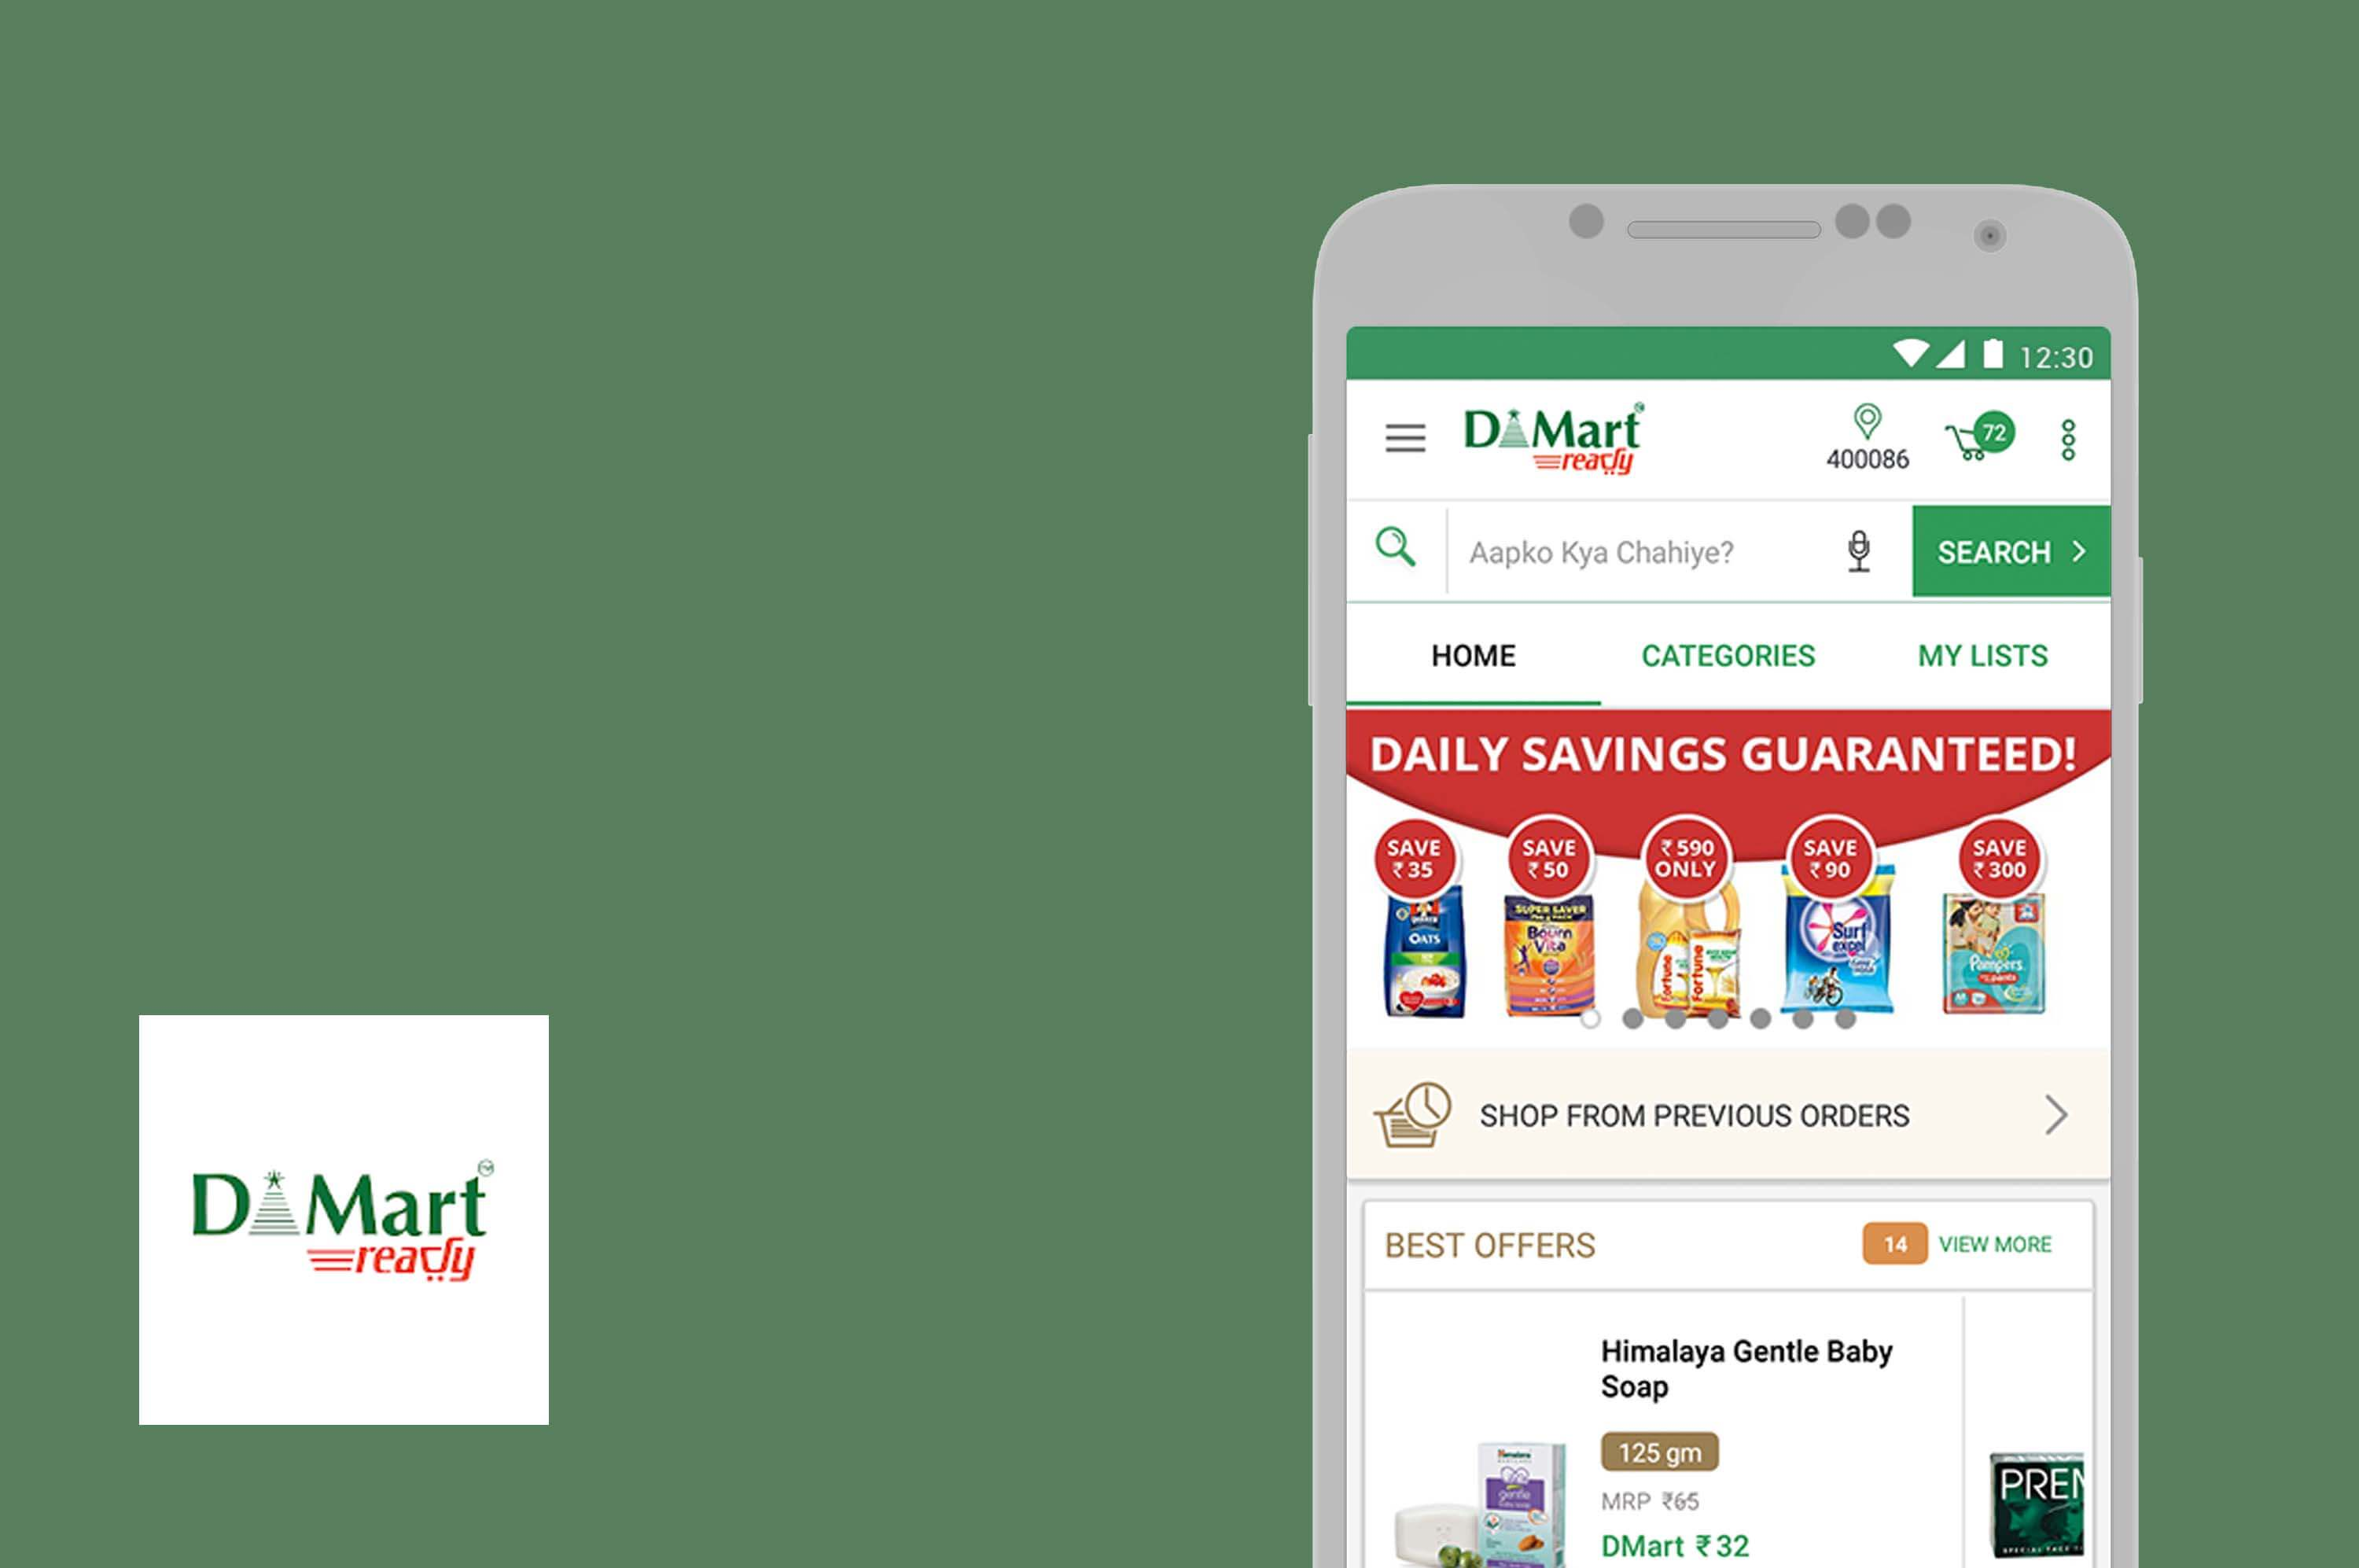 a smartphone with d-mart app opened